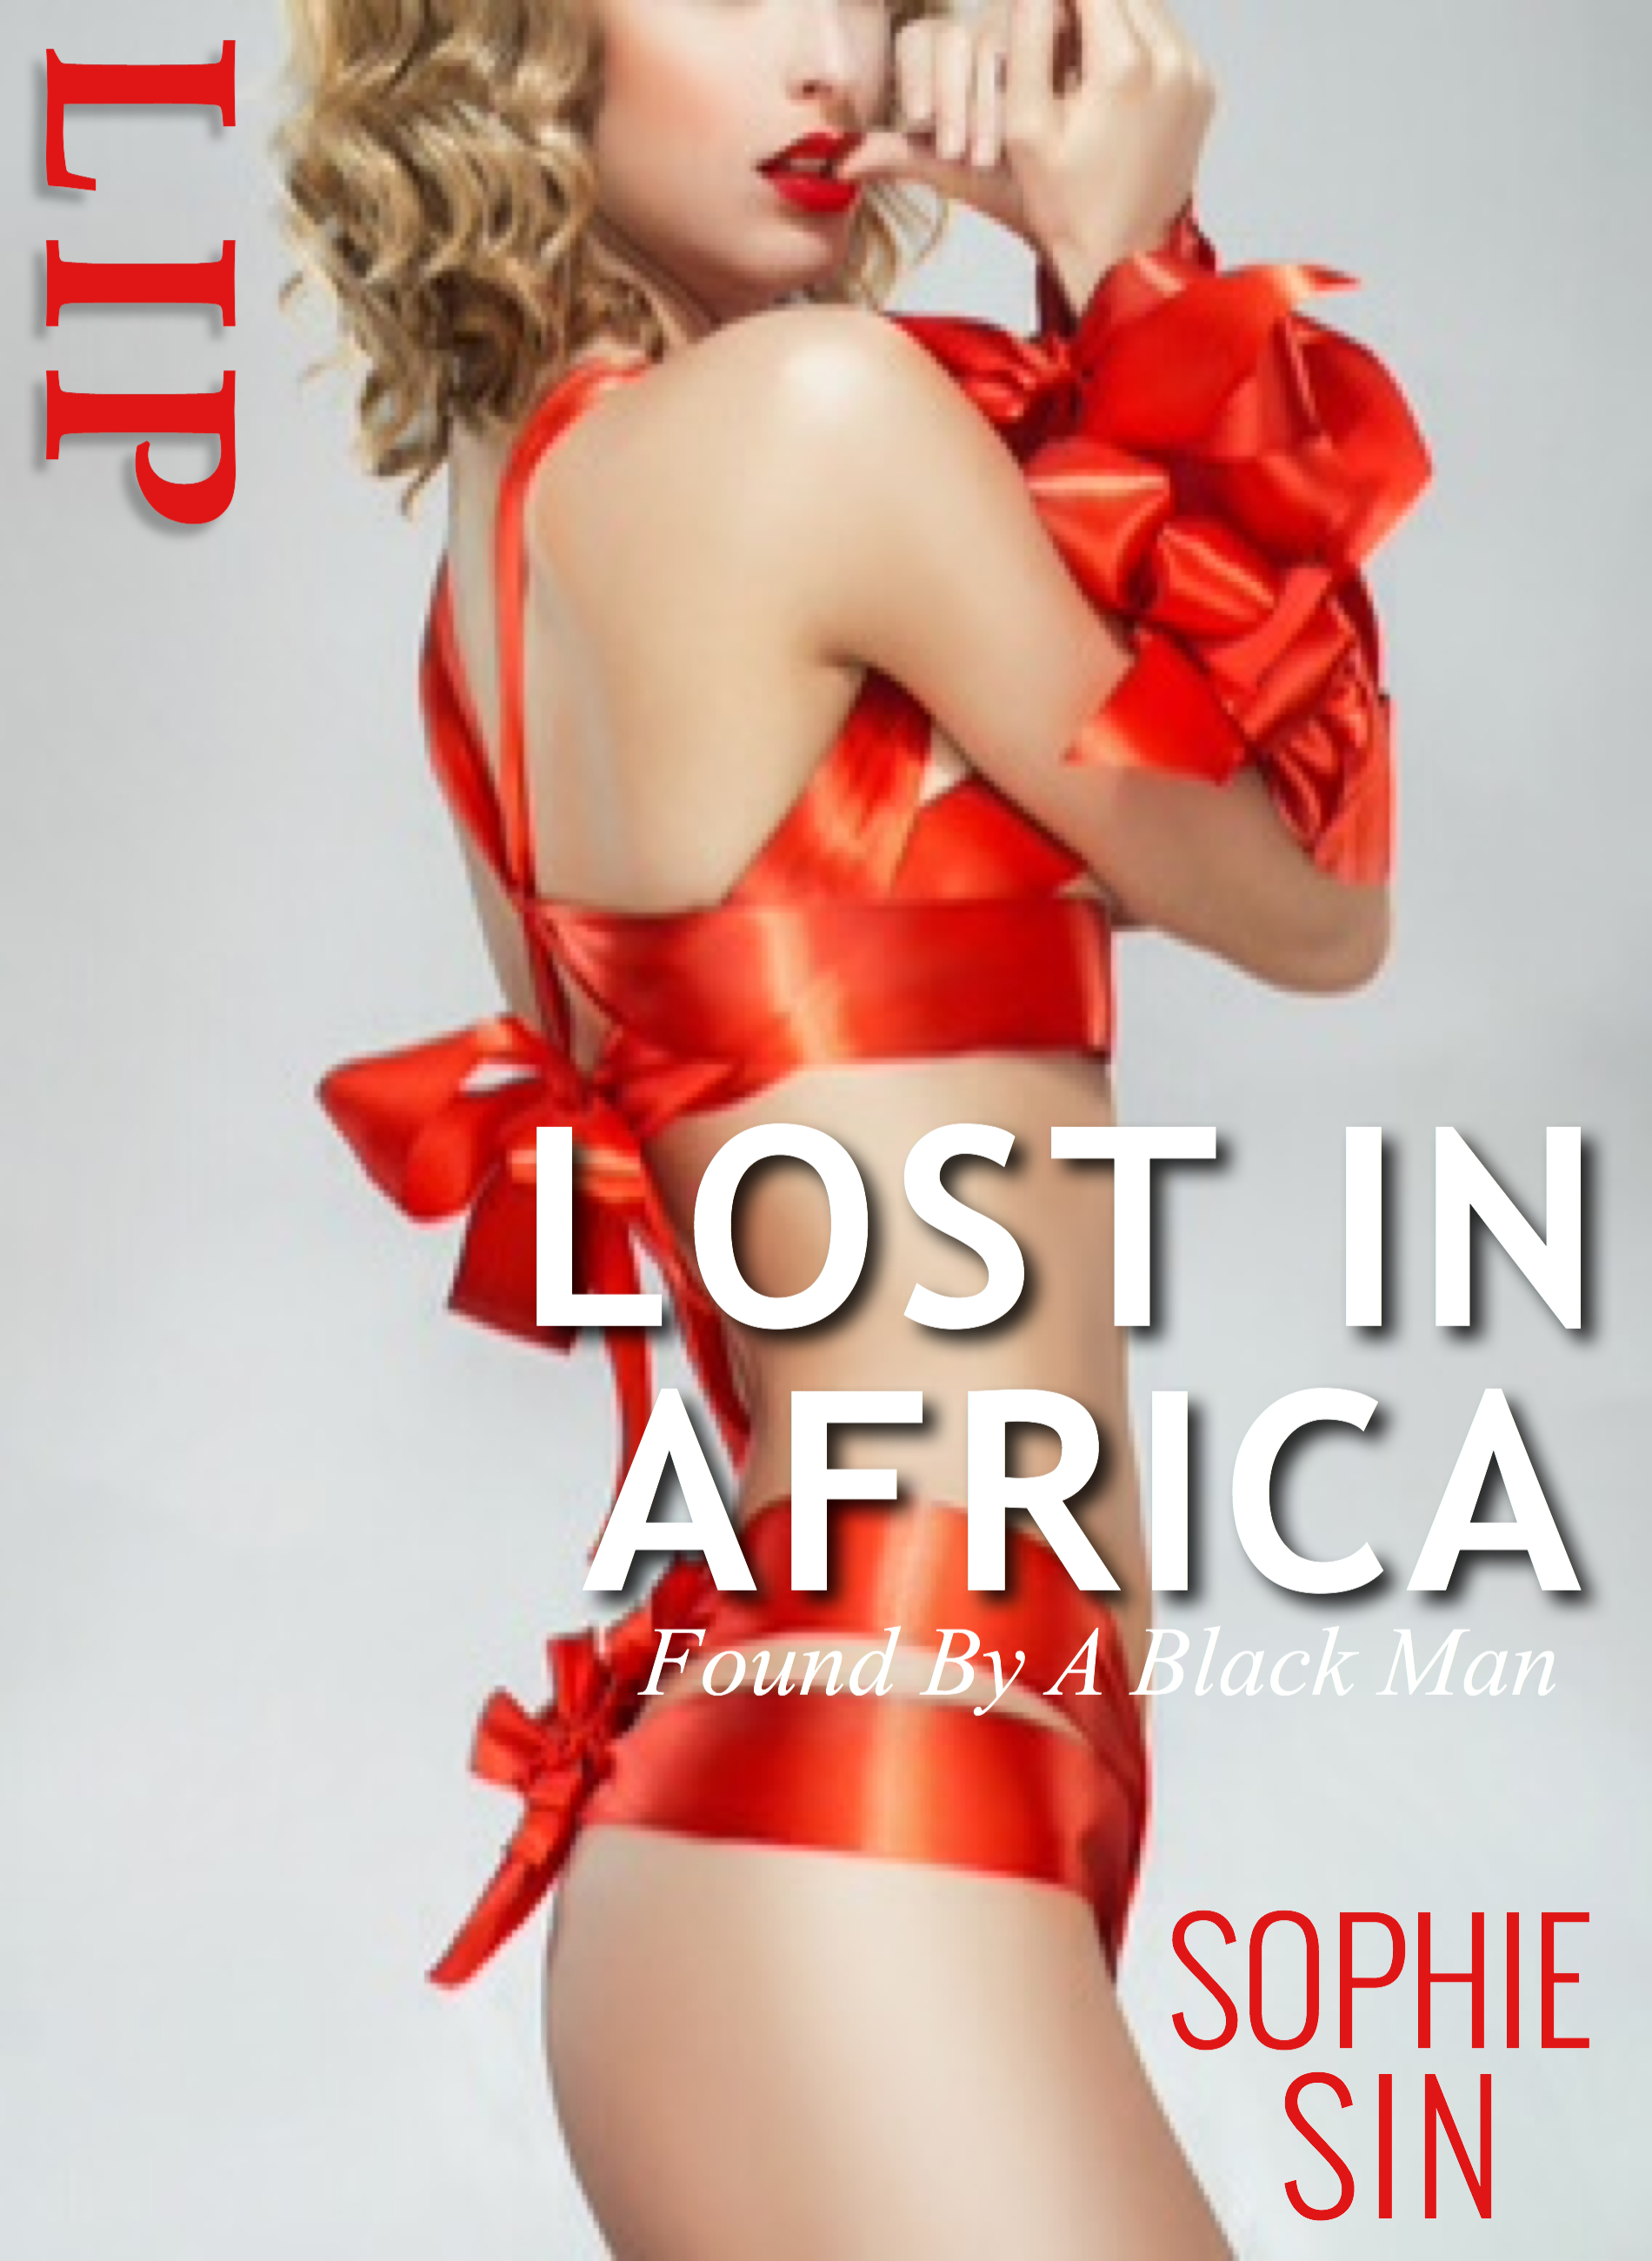 Lost In Africa: Found By A Black Man Sophie Sin